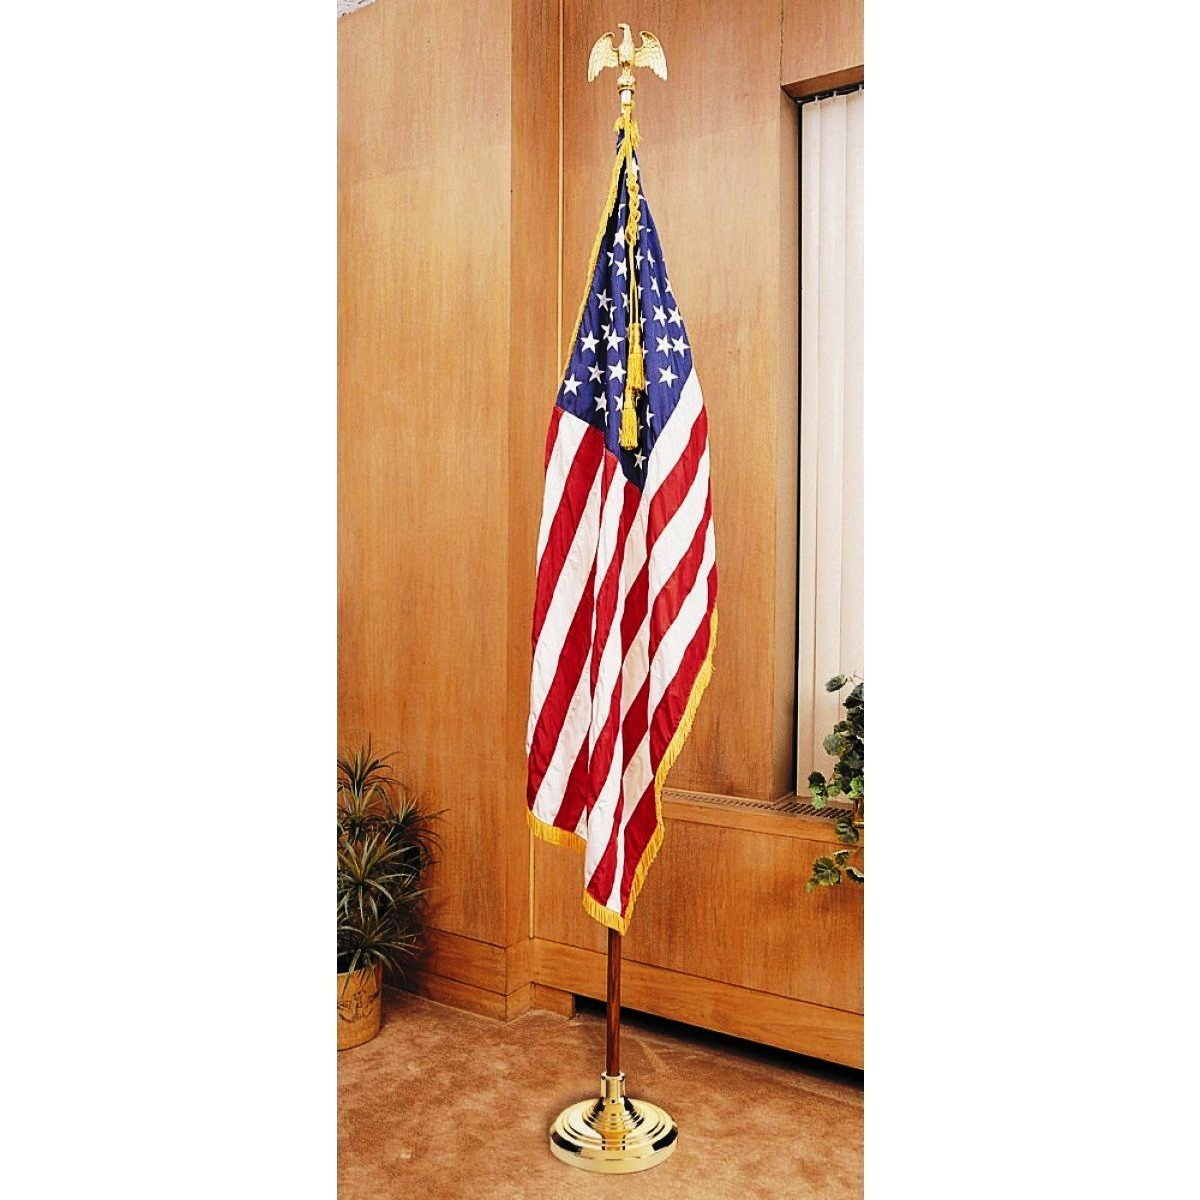 US Flag Factory 8' American Flag Indoor Set with Wood Pole - Complete Presentation Set